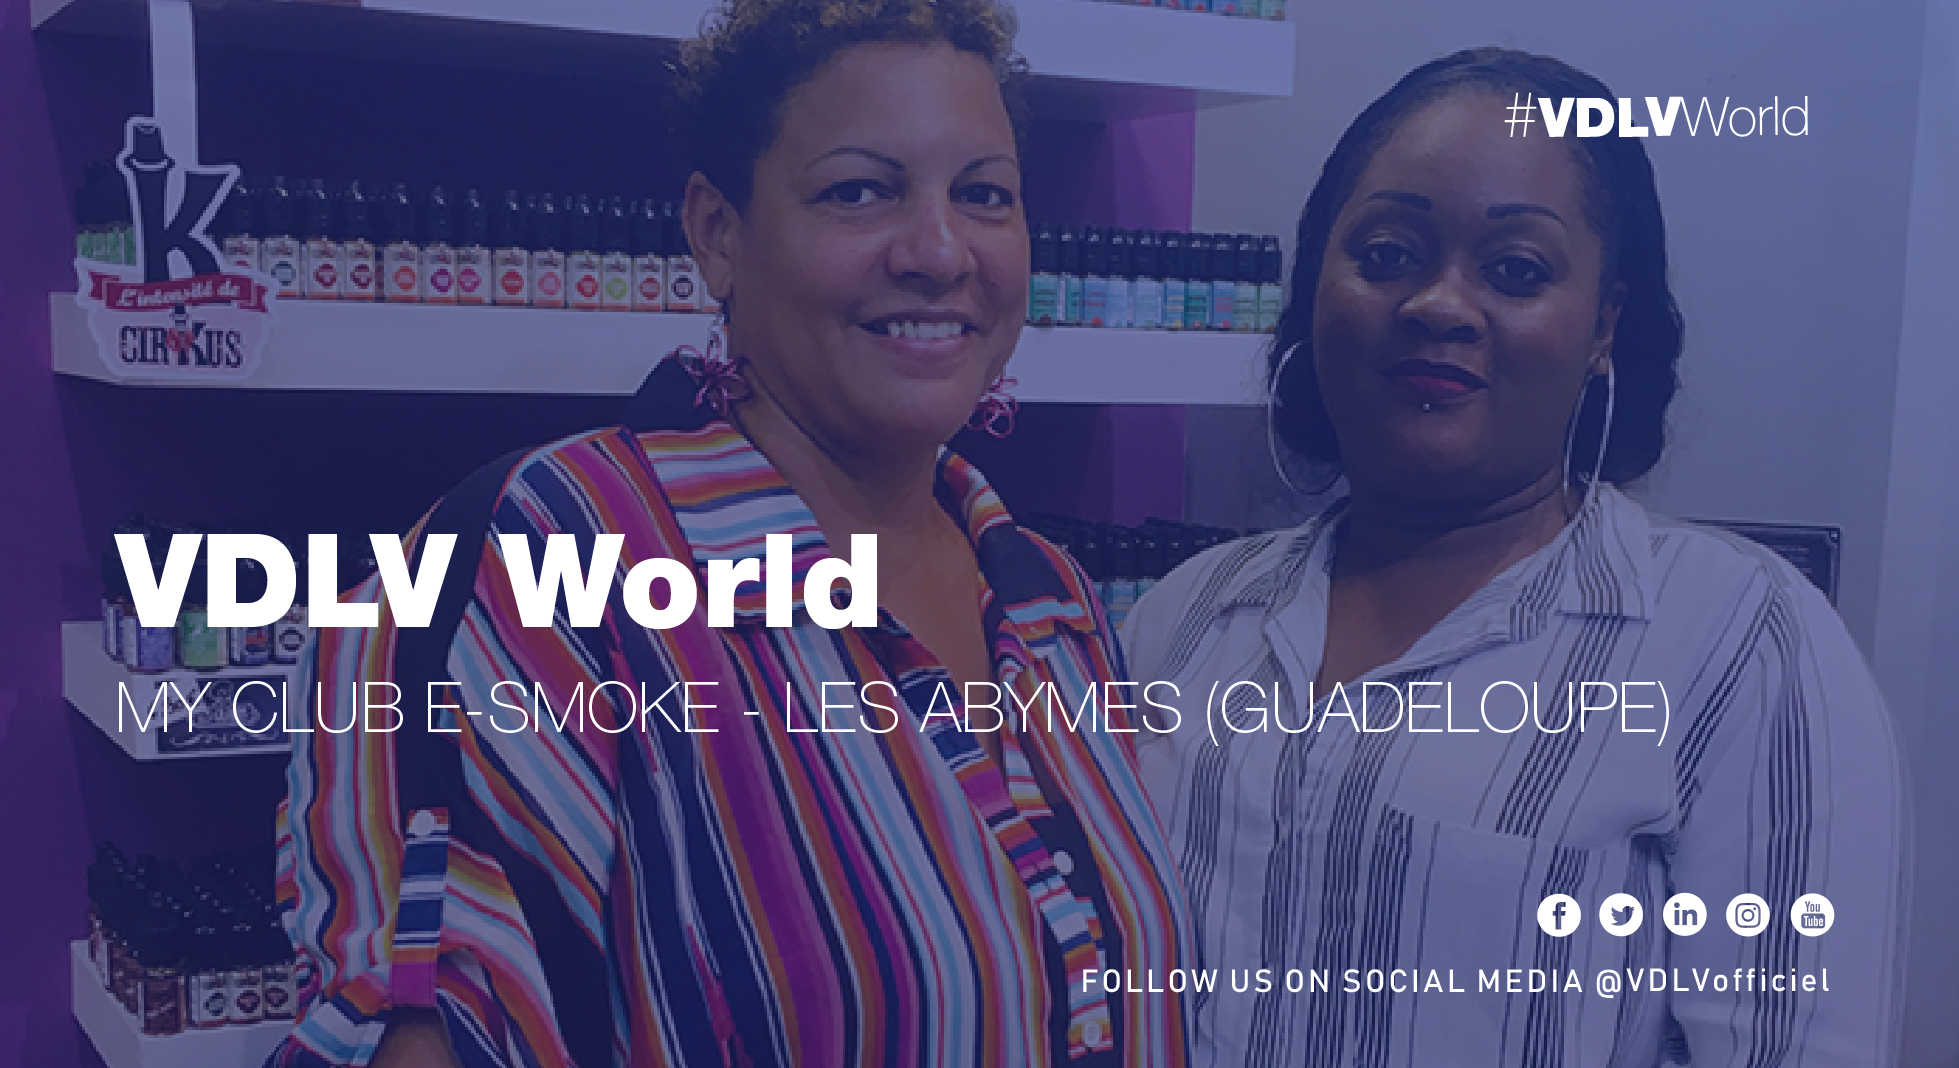 VDLV World – My Club E-Smoke Les Abymes